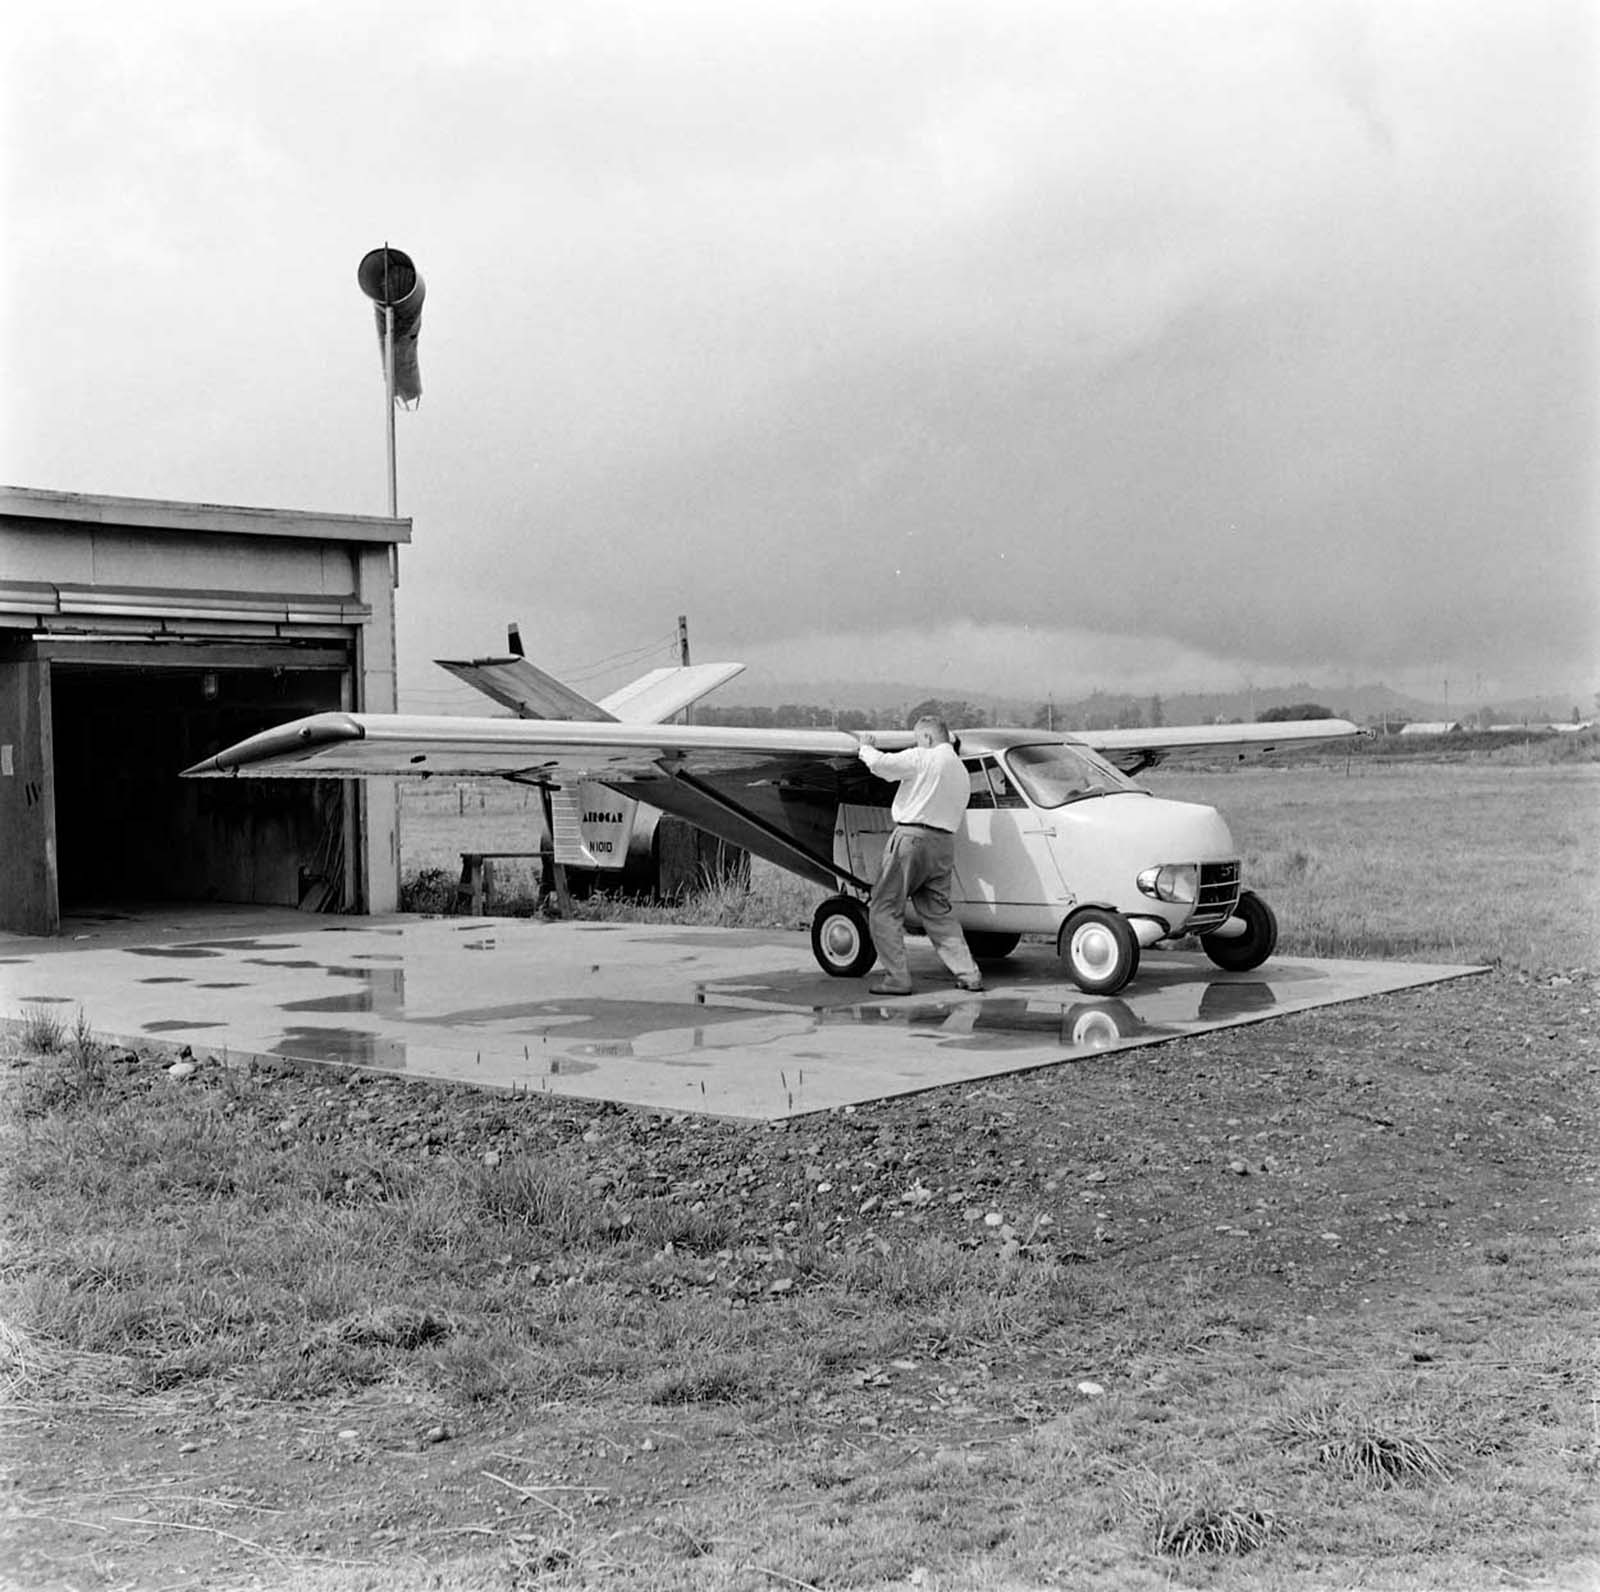 Moulton Taylor's Aerocar. The aerodynamic elements had convenient stowaway wheels that formed their own trailer for road-going travel. 1957.